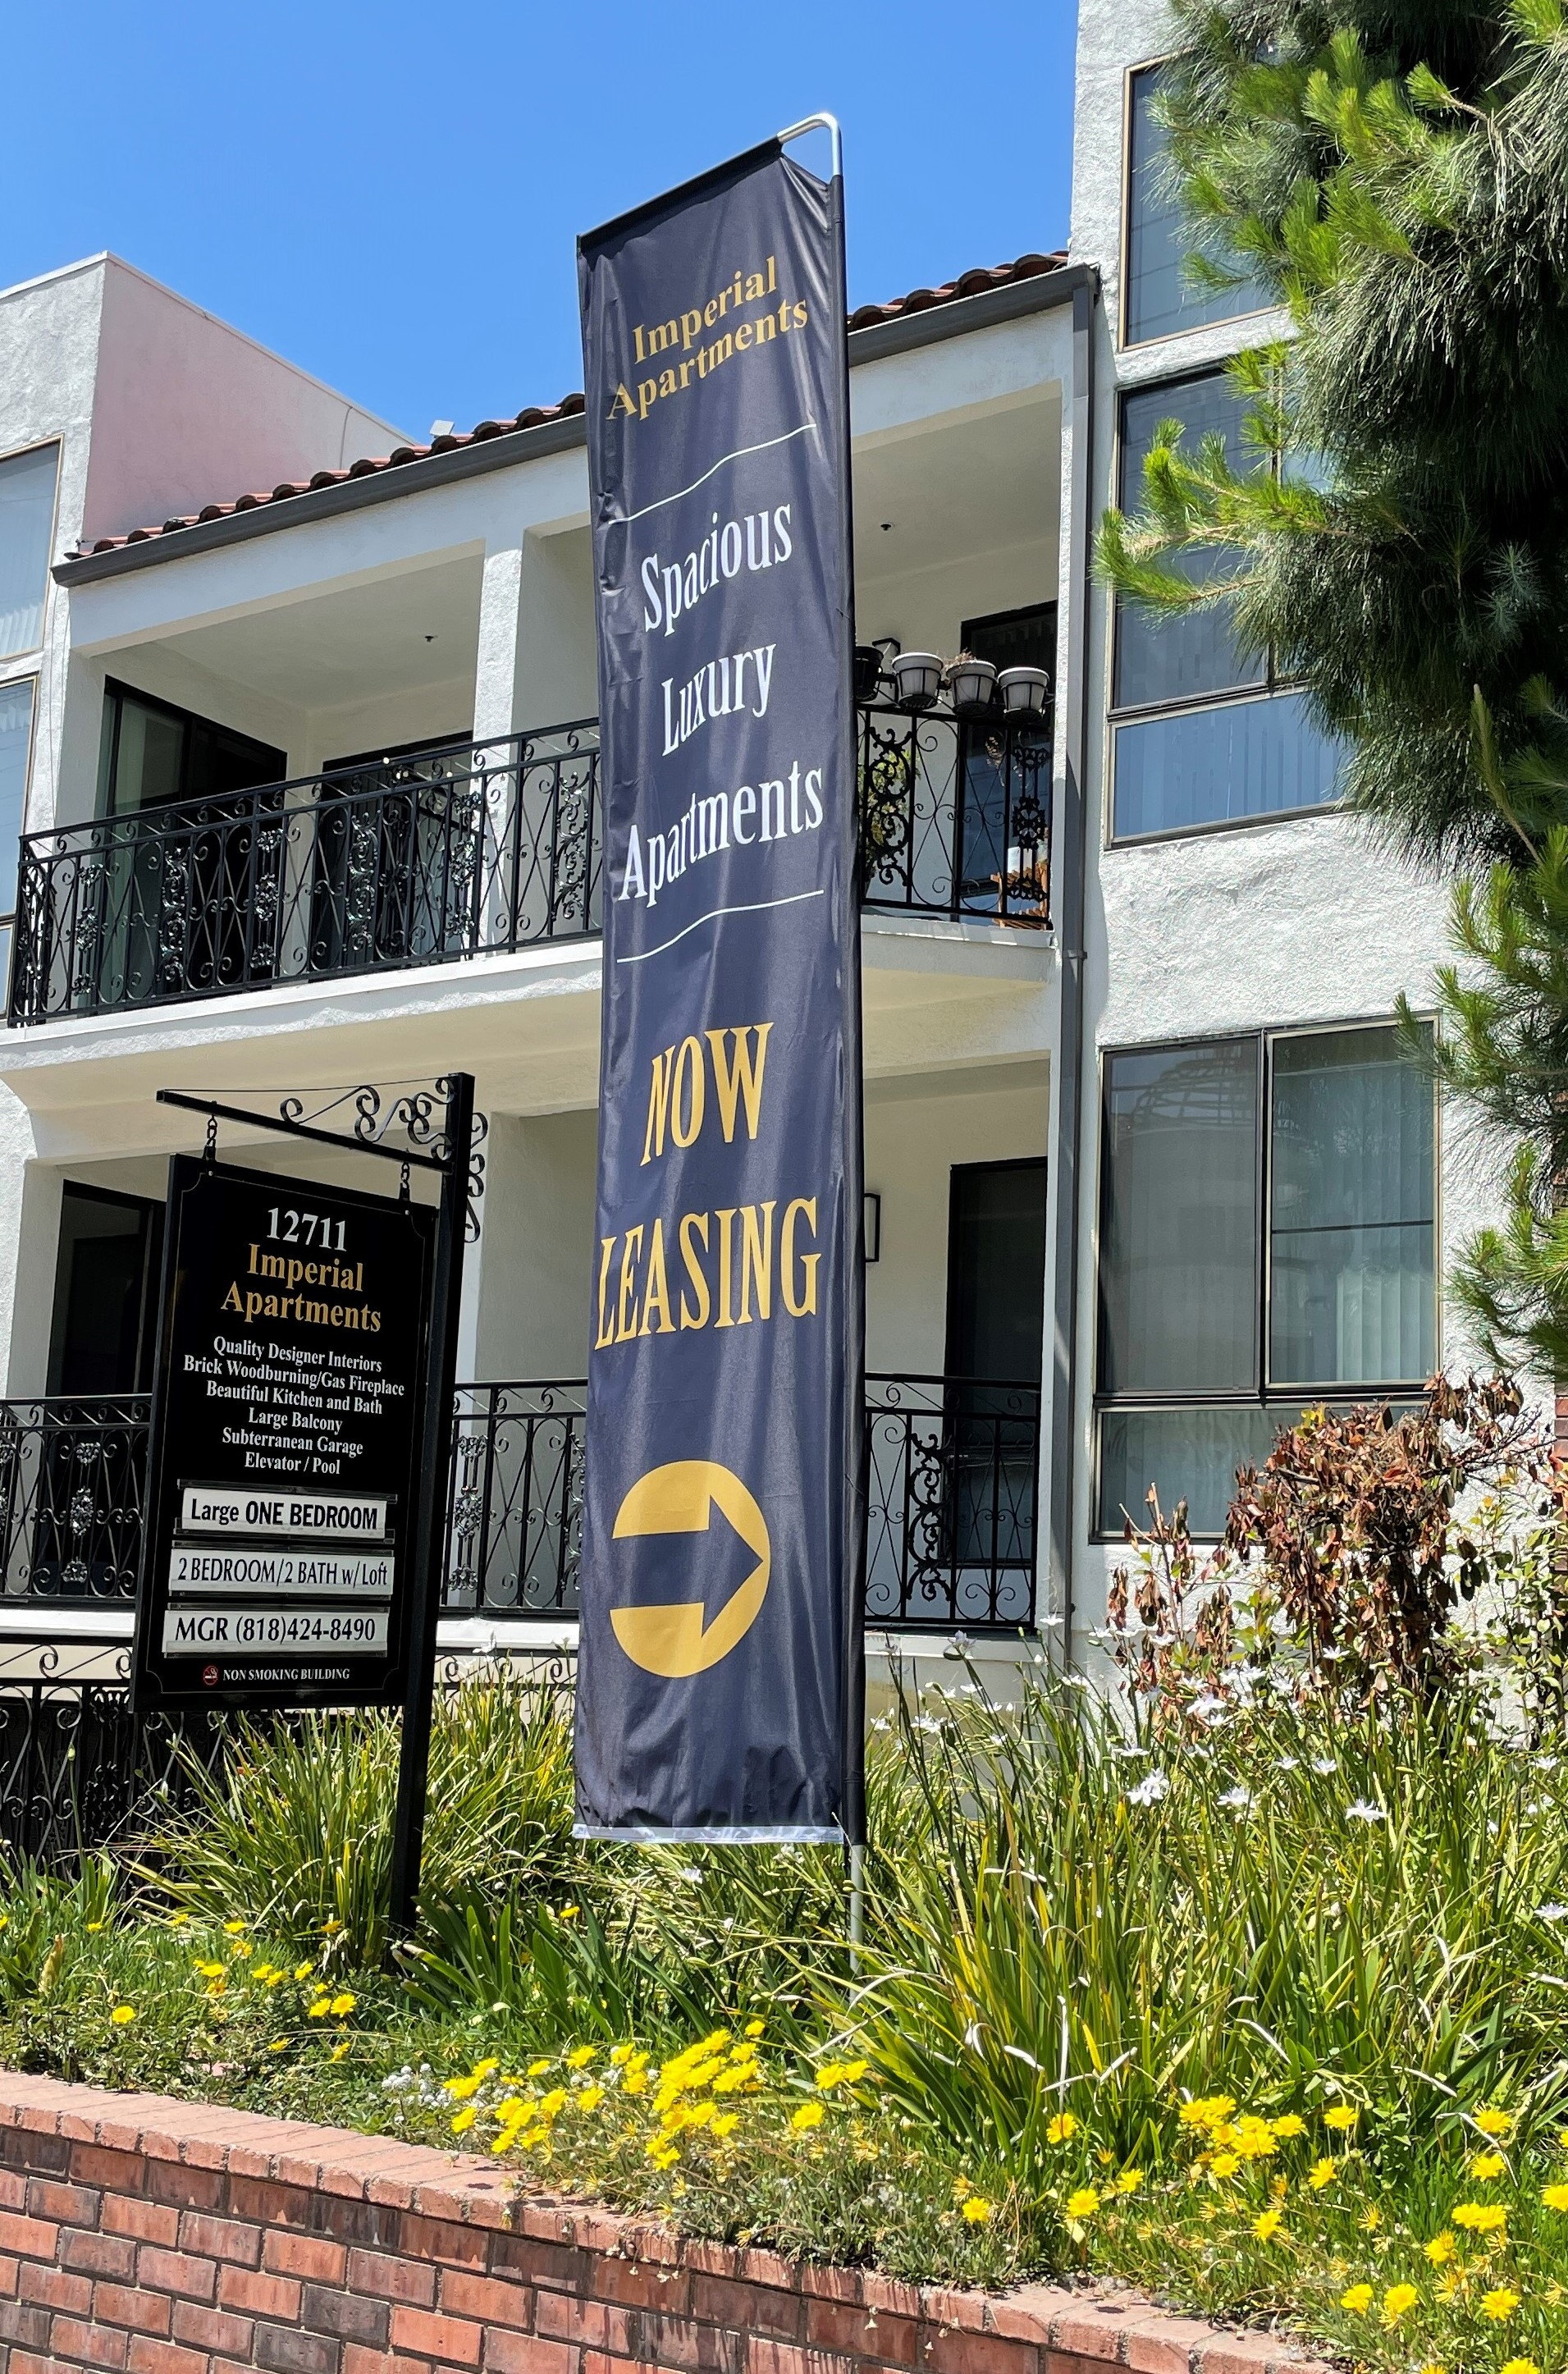 Real estate firms can reach customers better with advertisement banners detailing their properties. Like our signs for Imperial Apartments in Studio Cities.